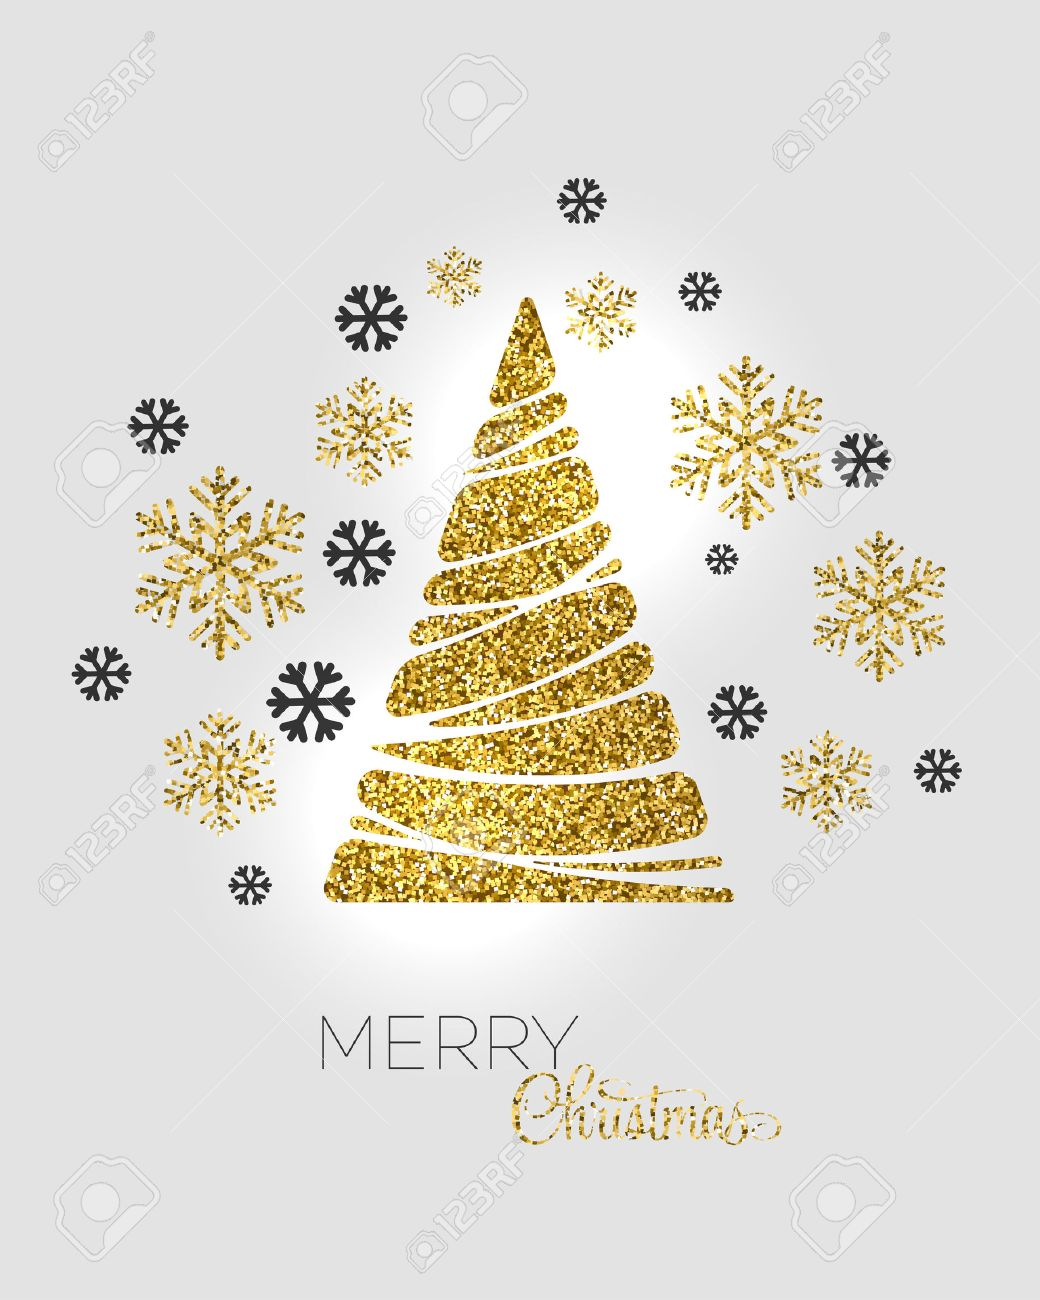 vector illustration gold christmas tree holiday background stock vector 49325457 - Gold Christmas Tree